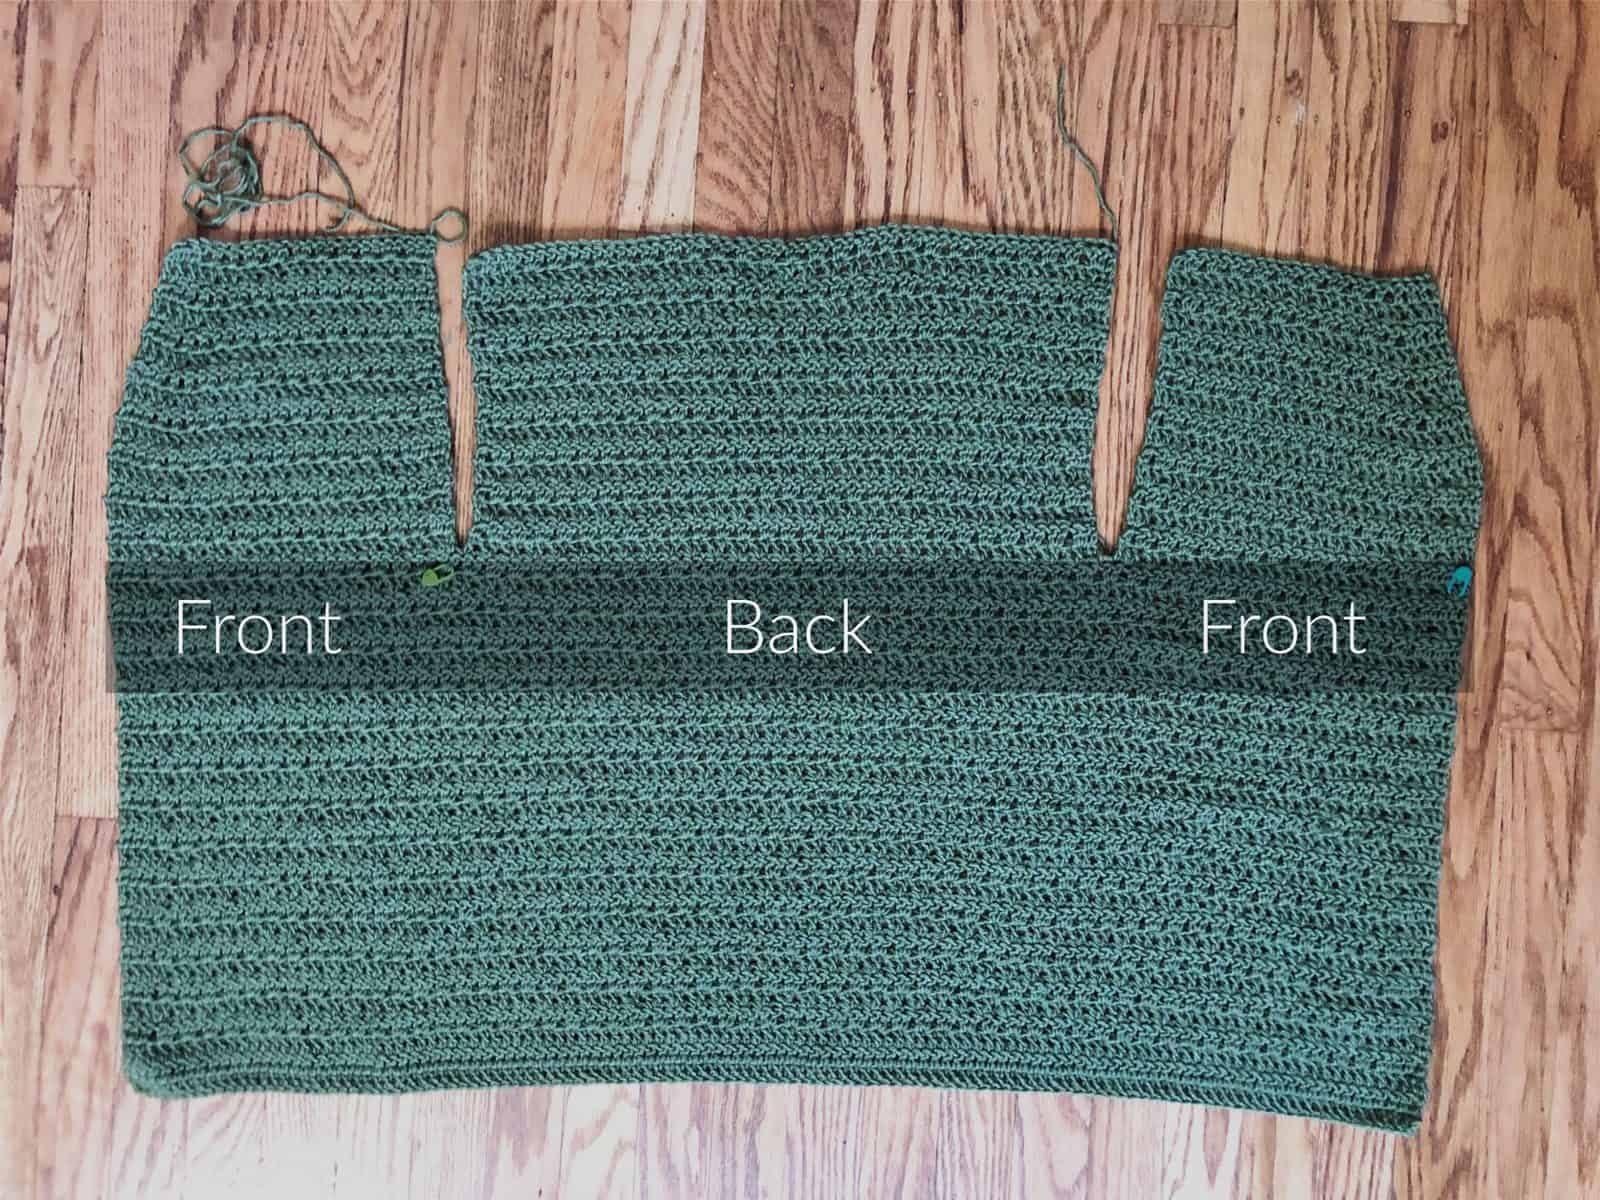 Picture of cardigan flat labeled front back front panels